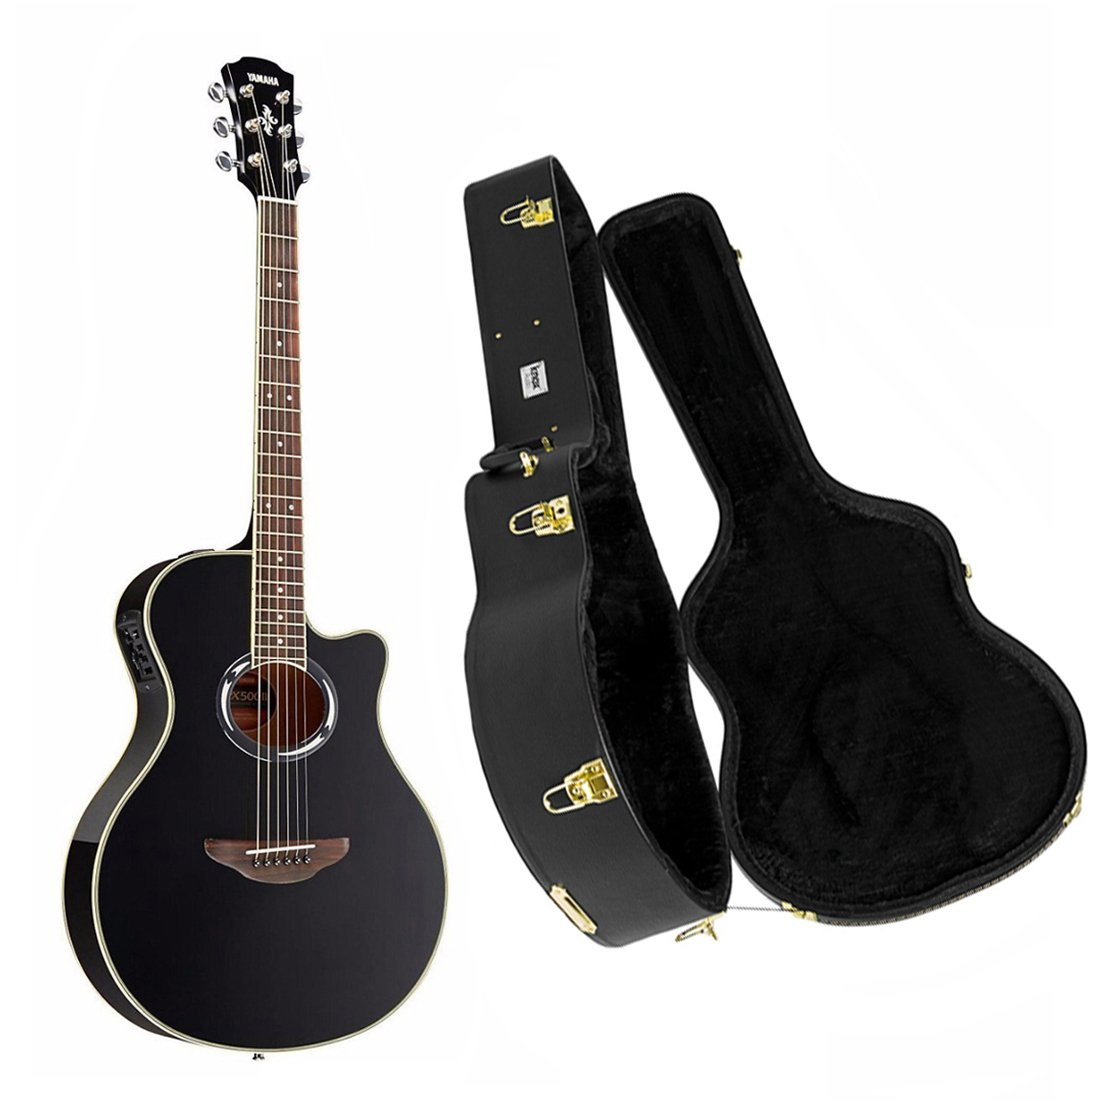 Yamaha APX500III Acoustic/Electric Cutaway Black Guitar with Knox Hardshell Case